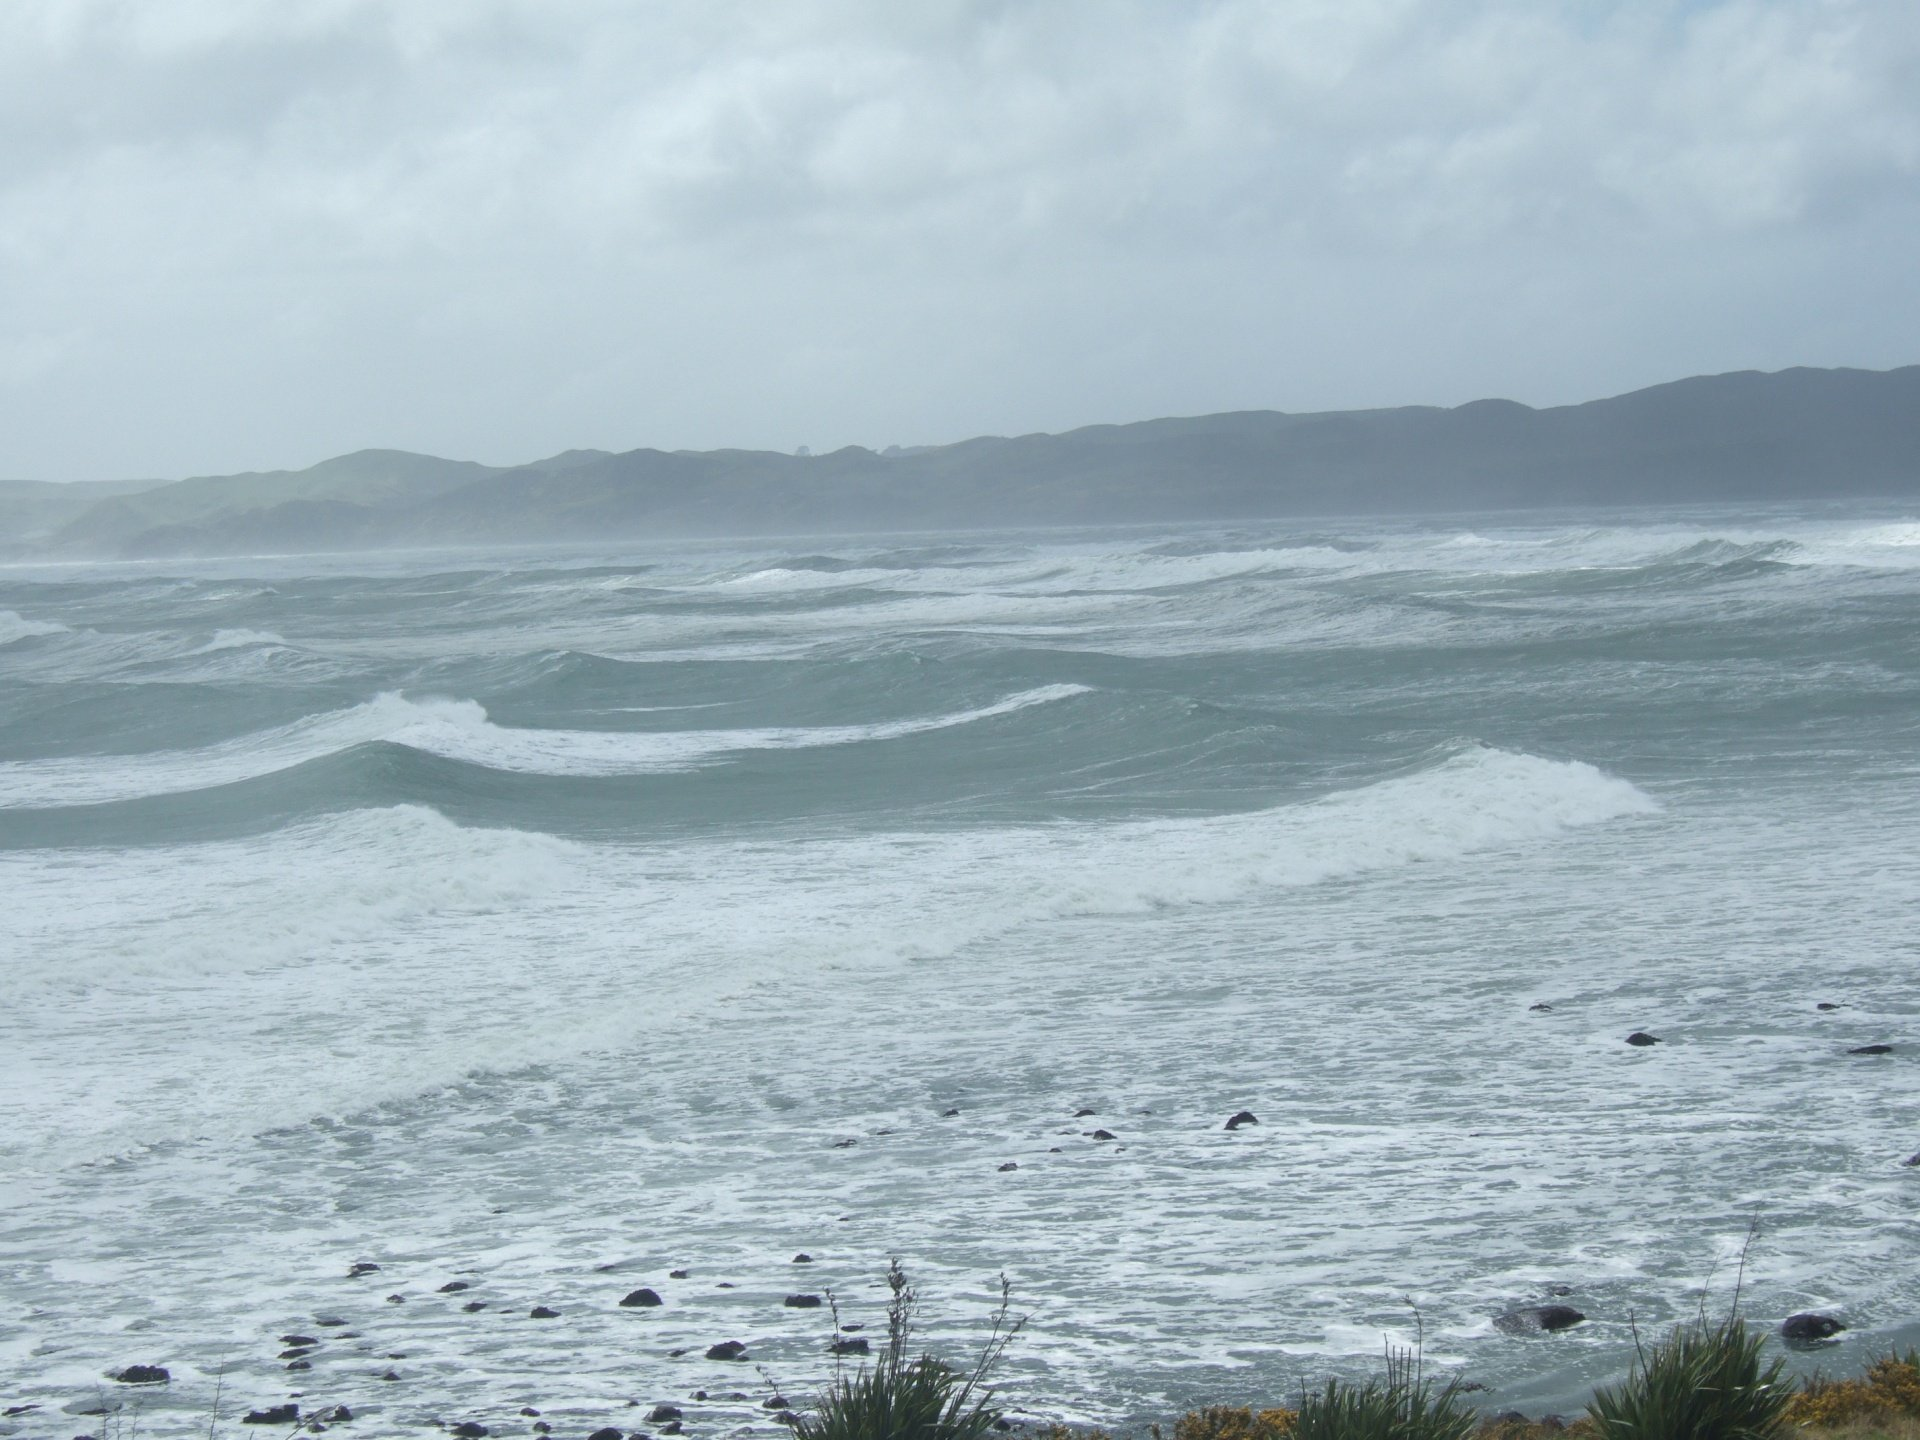 Tania van Megchelen's photo of Raglan